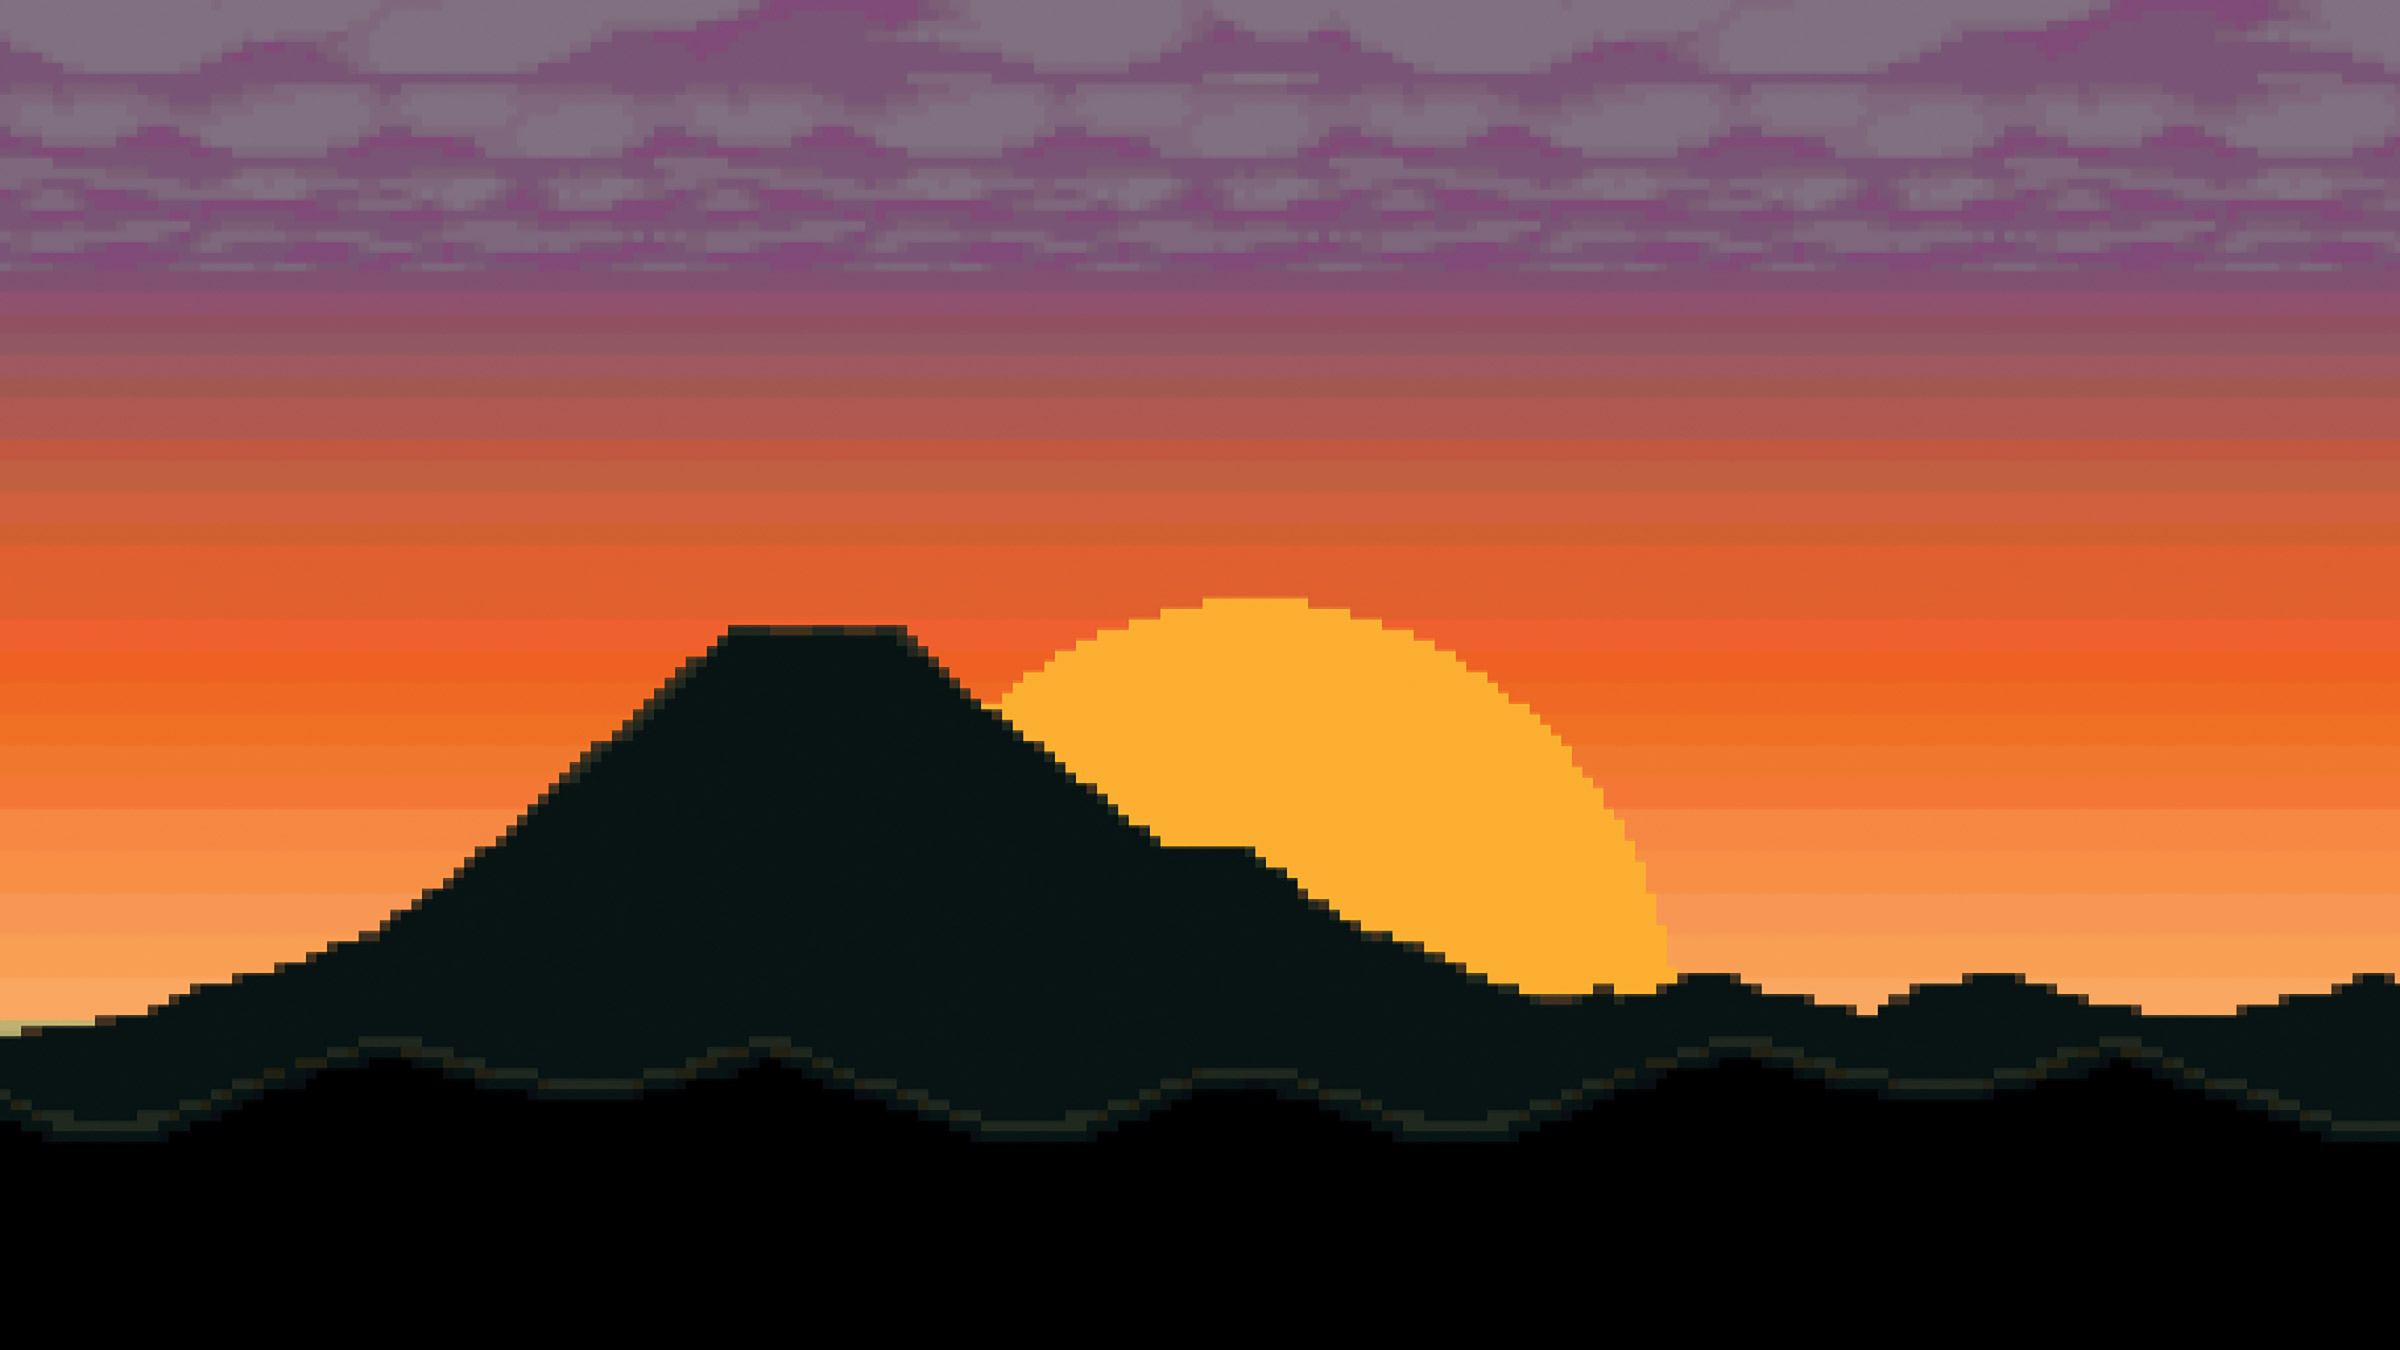 Pixel graphic of sun setting behind a mountain